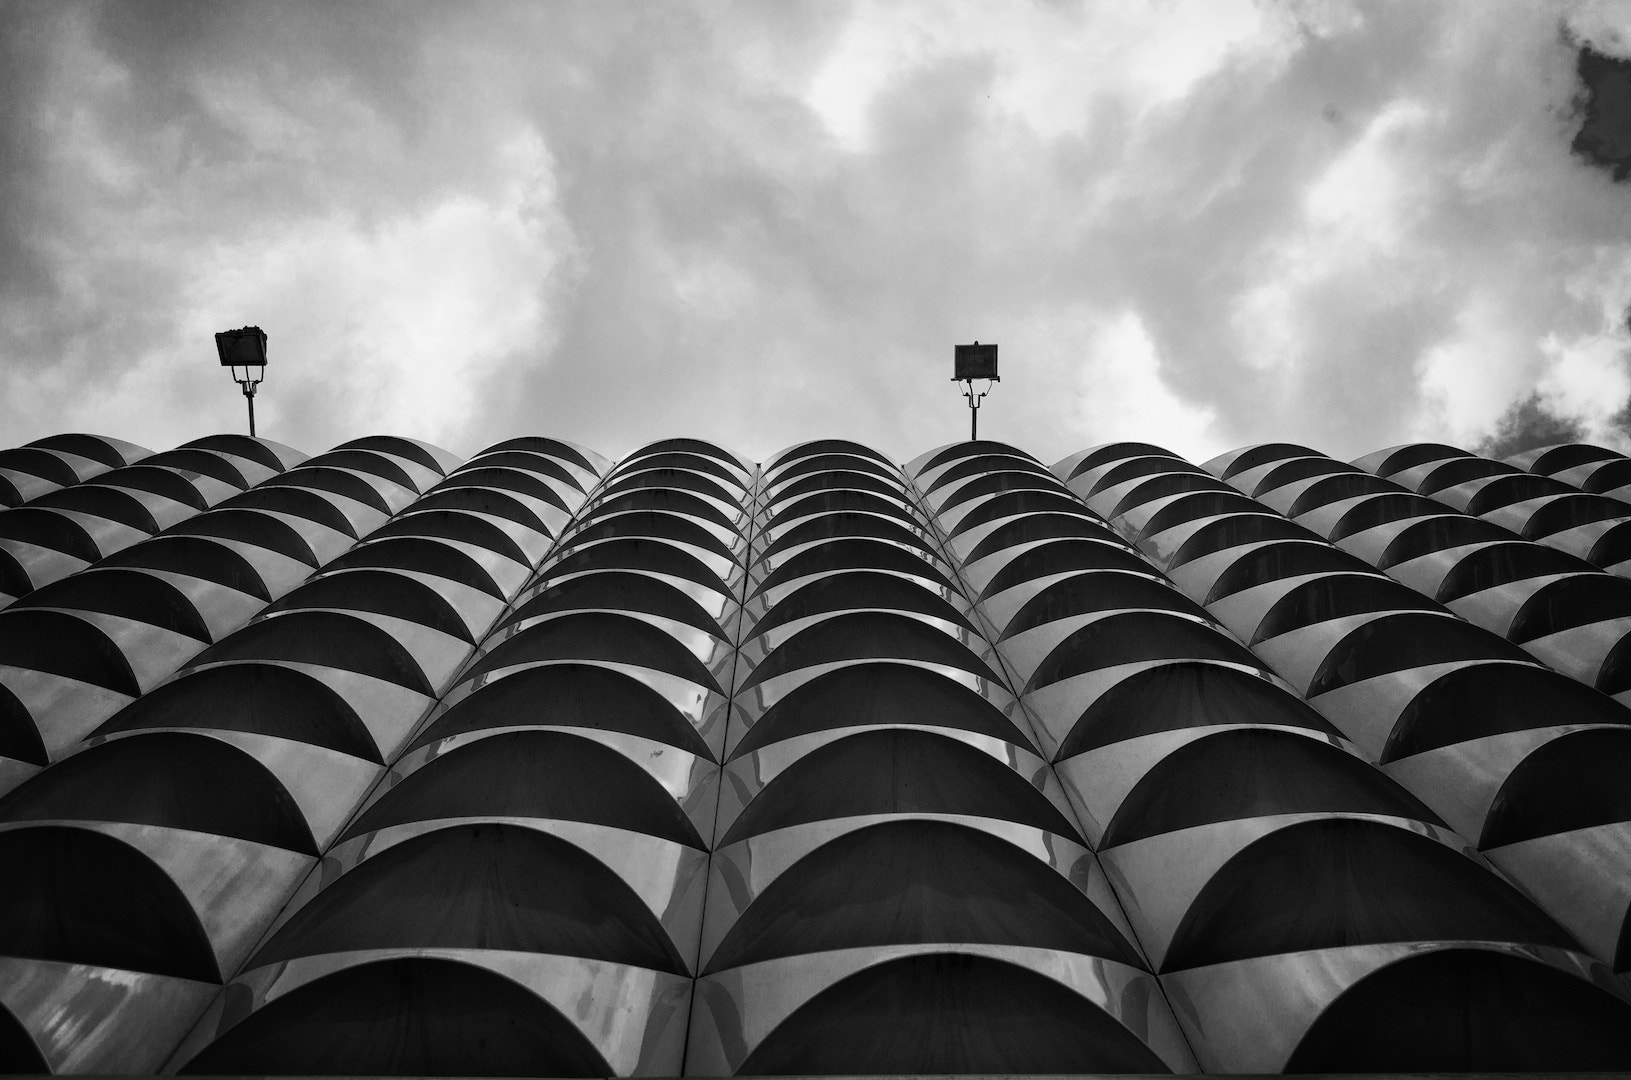 Photograph Sliced by Romain Winkel on 500px